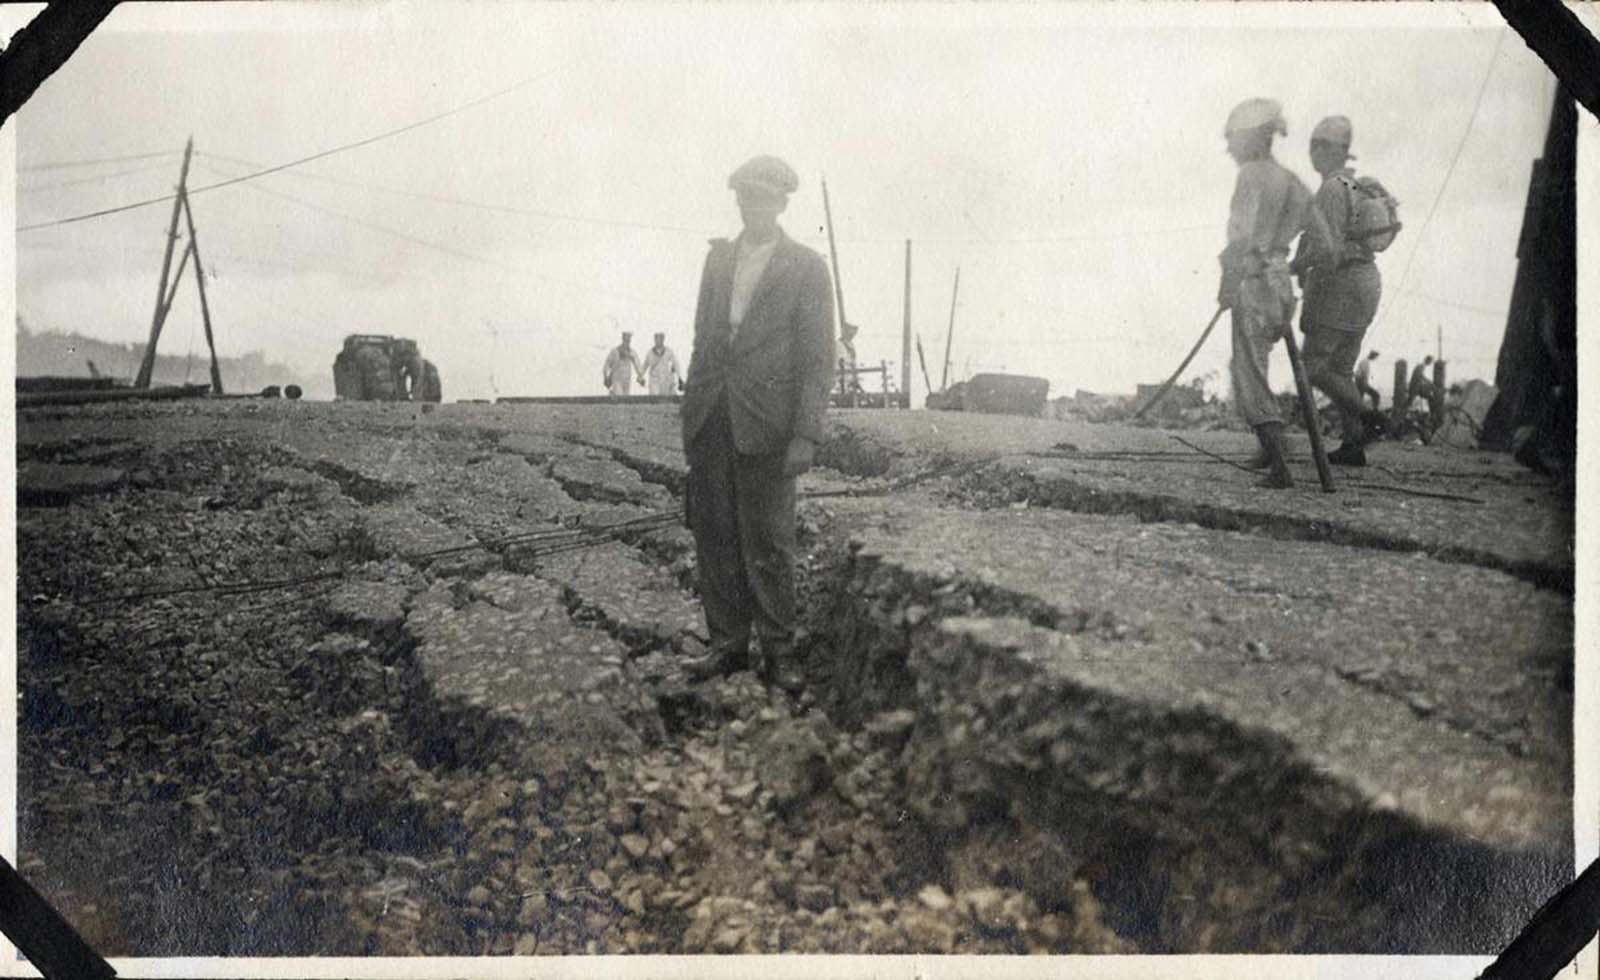 A man stands atop a fissured road.